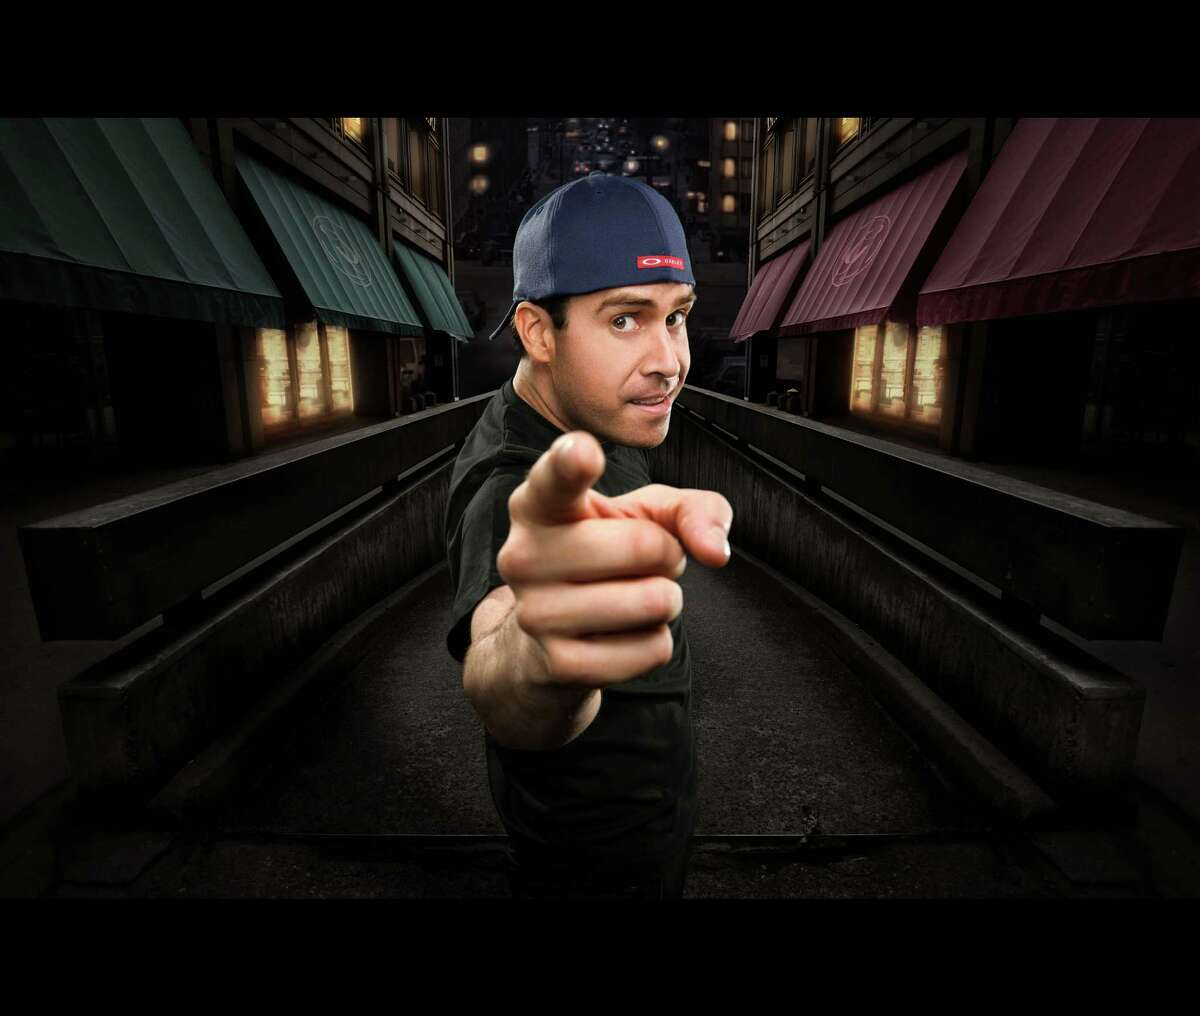 Comedian Pablo Francisco will perform at The Fox Theater at Foxwoods Resort Casino on Tuesday, Dec. 27.